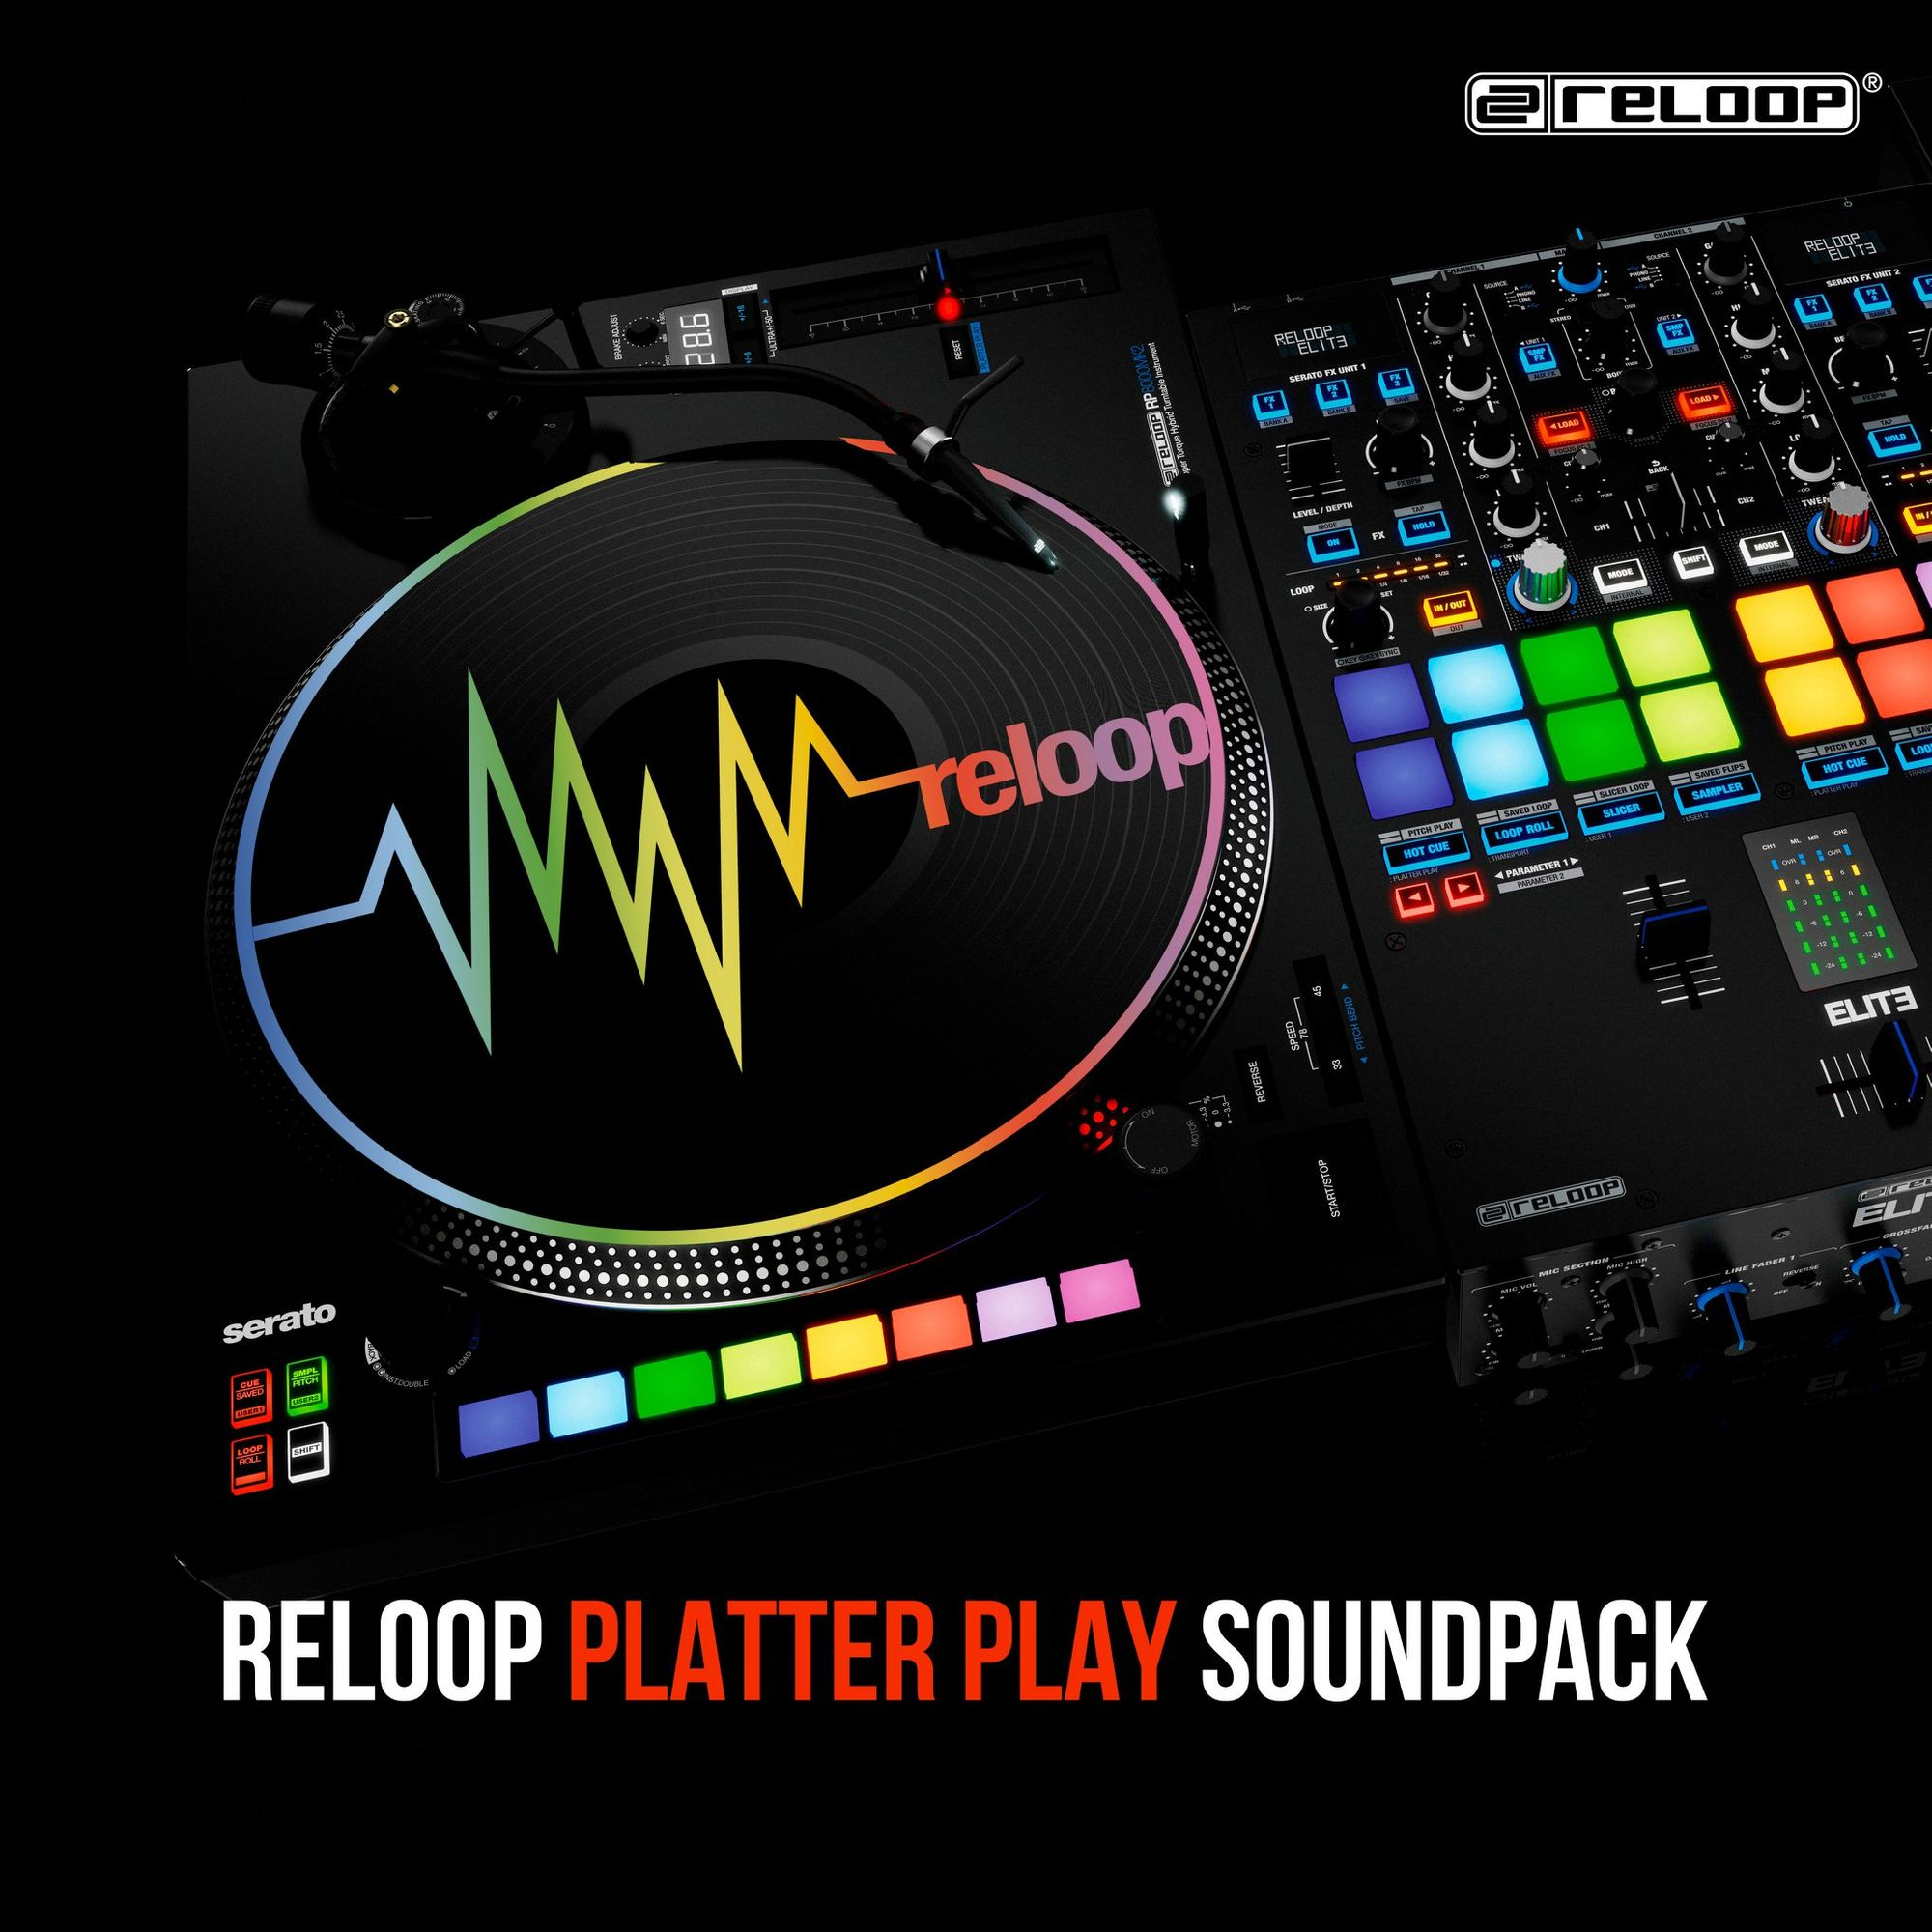 RP-8000 MK2 Platter Play Soundpacks by DJ Dens, DJ ANGELO, Chris Karns & DJ STYLEWARZ